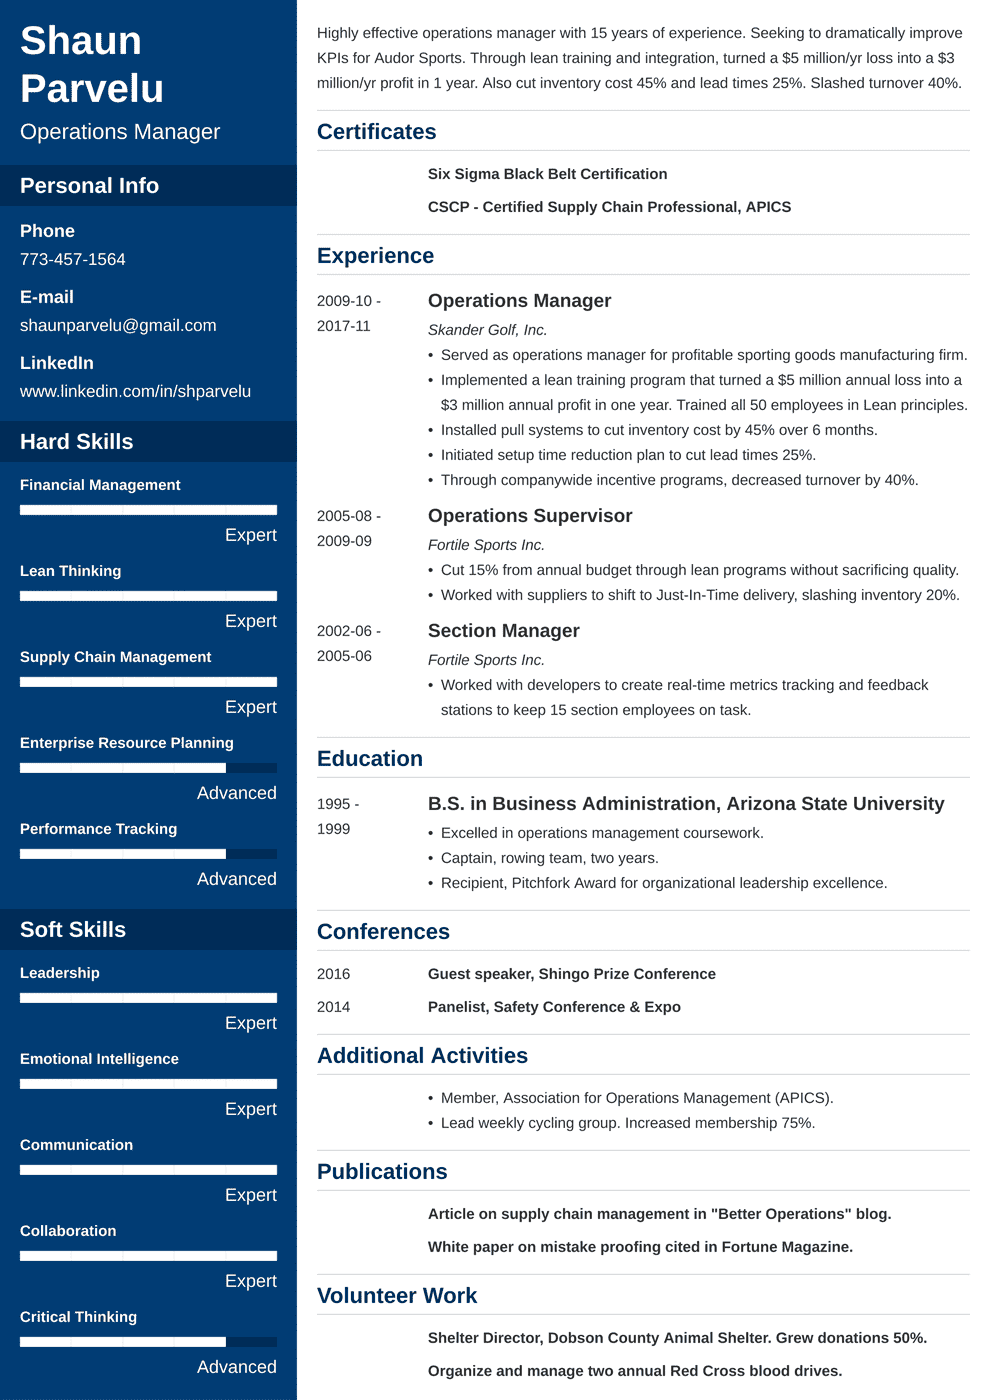 Operations Manager Resume: Sample & Writing Guide [+20 Examples]